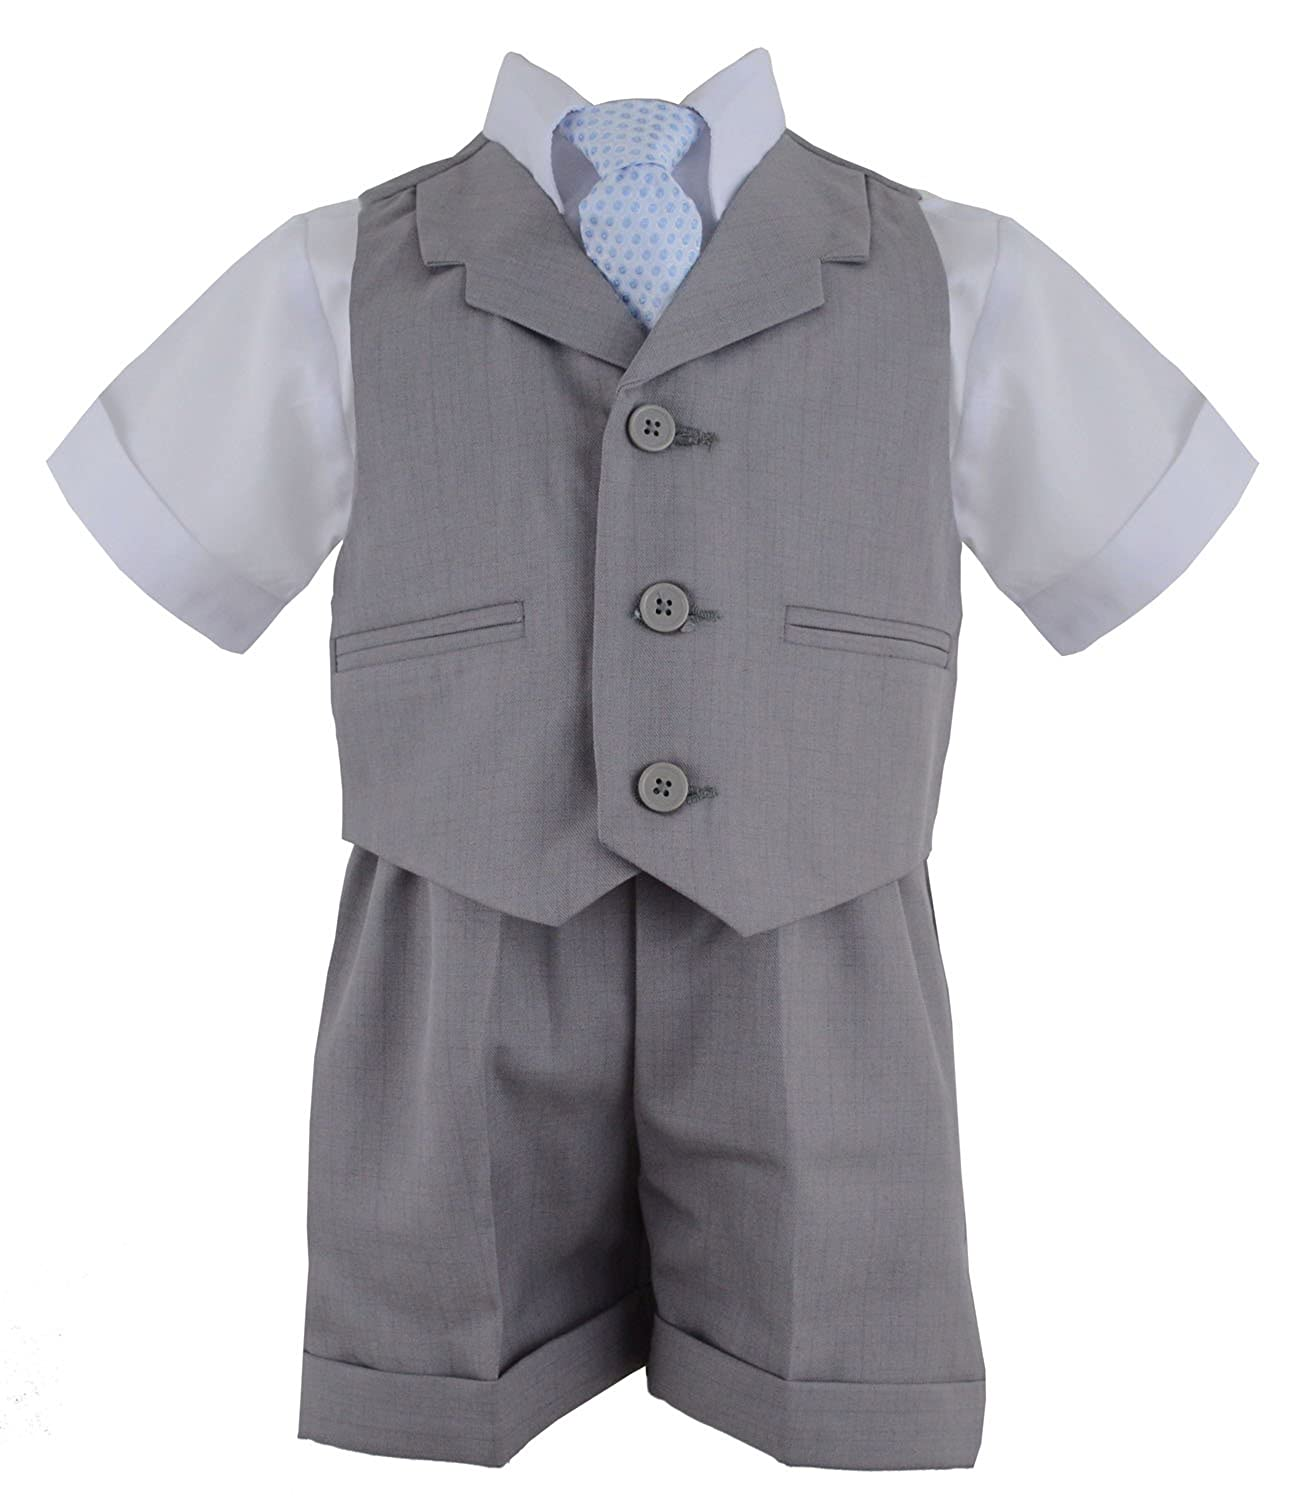 Gino Giovanni Baby-boys Summer Suit Vest Short Set